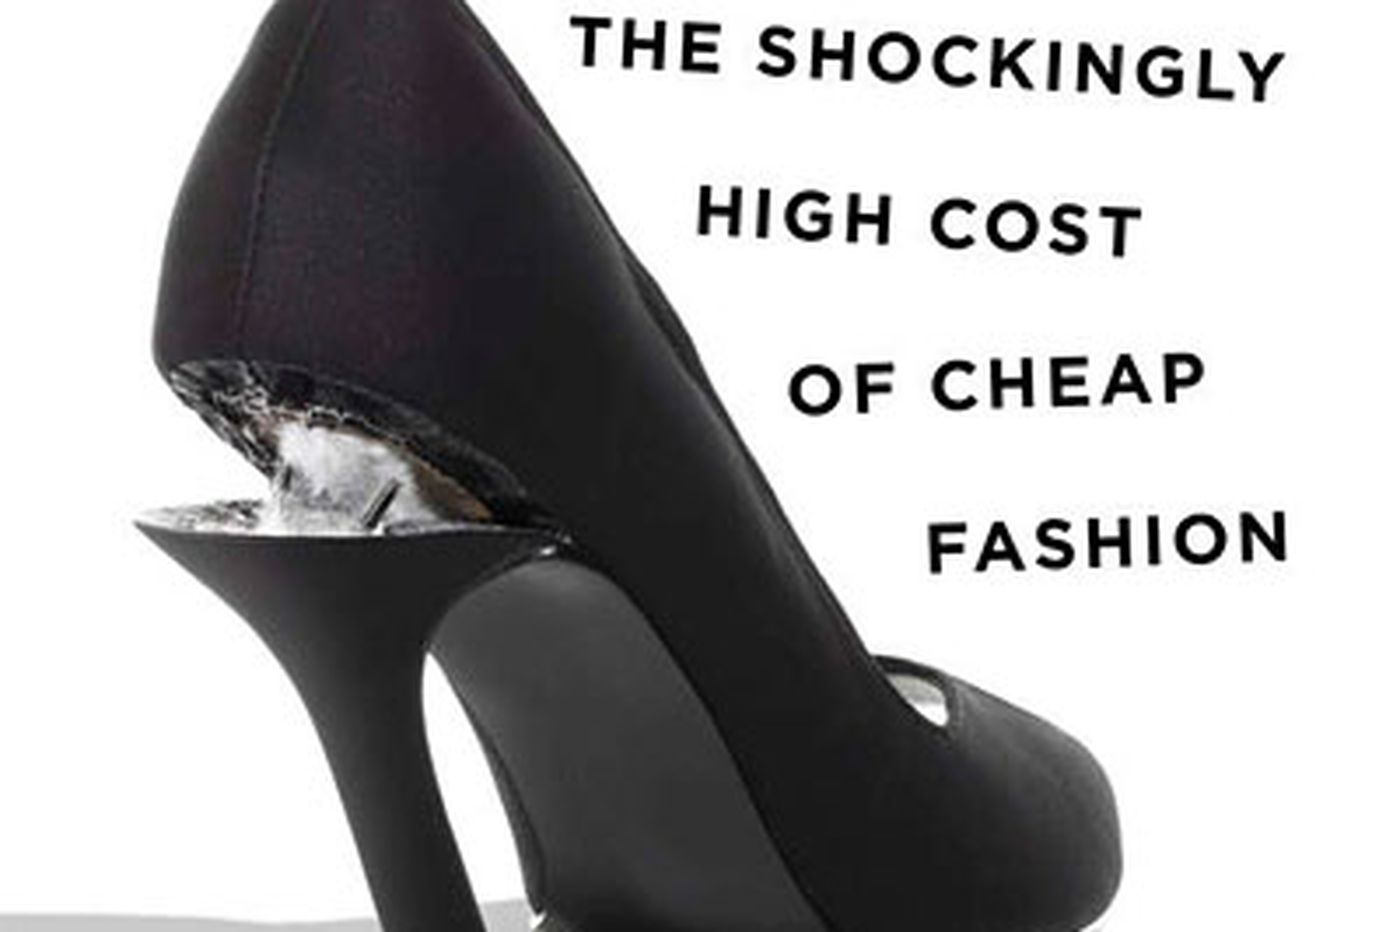 Cheap fashion: The steep toll it takes